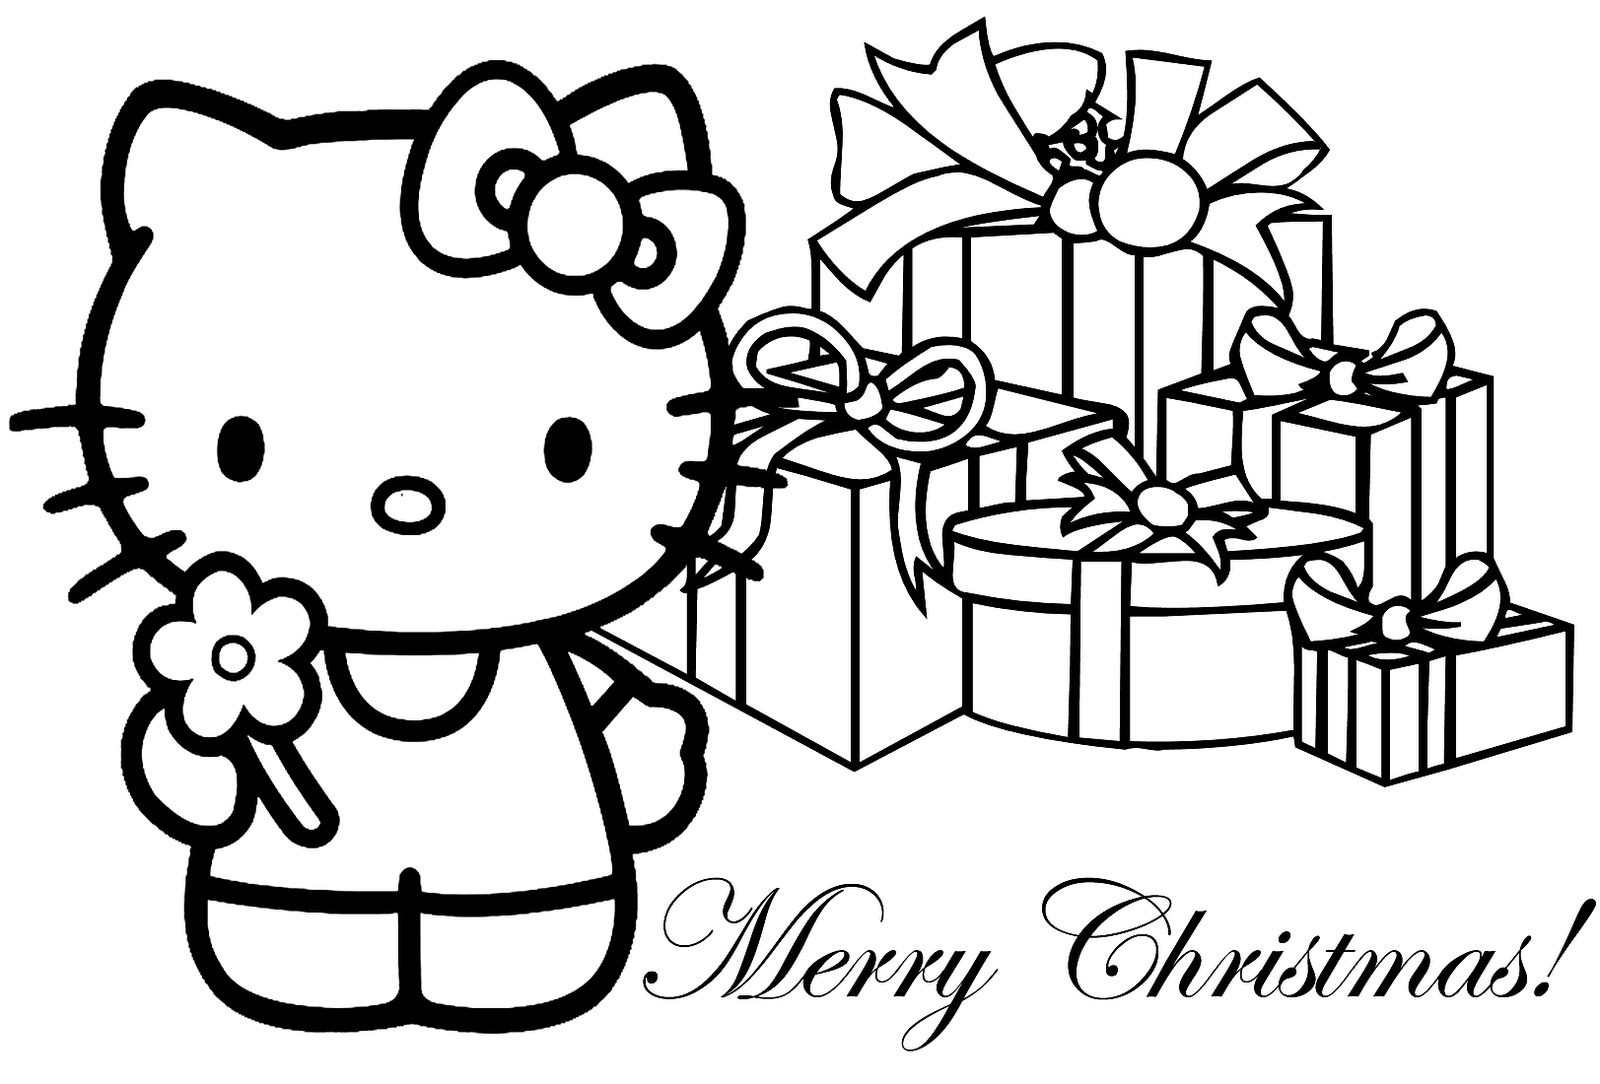 christmas coloring pages hello kitty free coloring pages printable pictures to color kids kitty hello christmas pages coloring